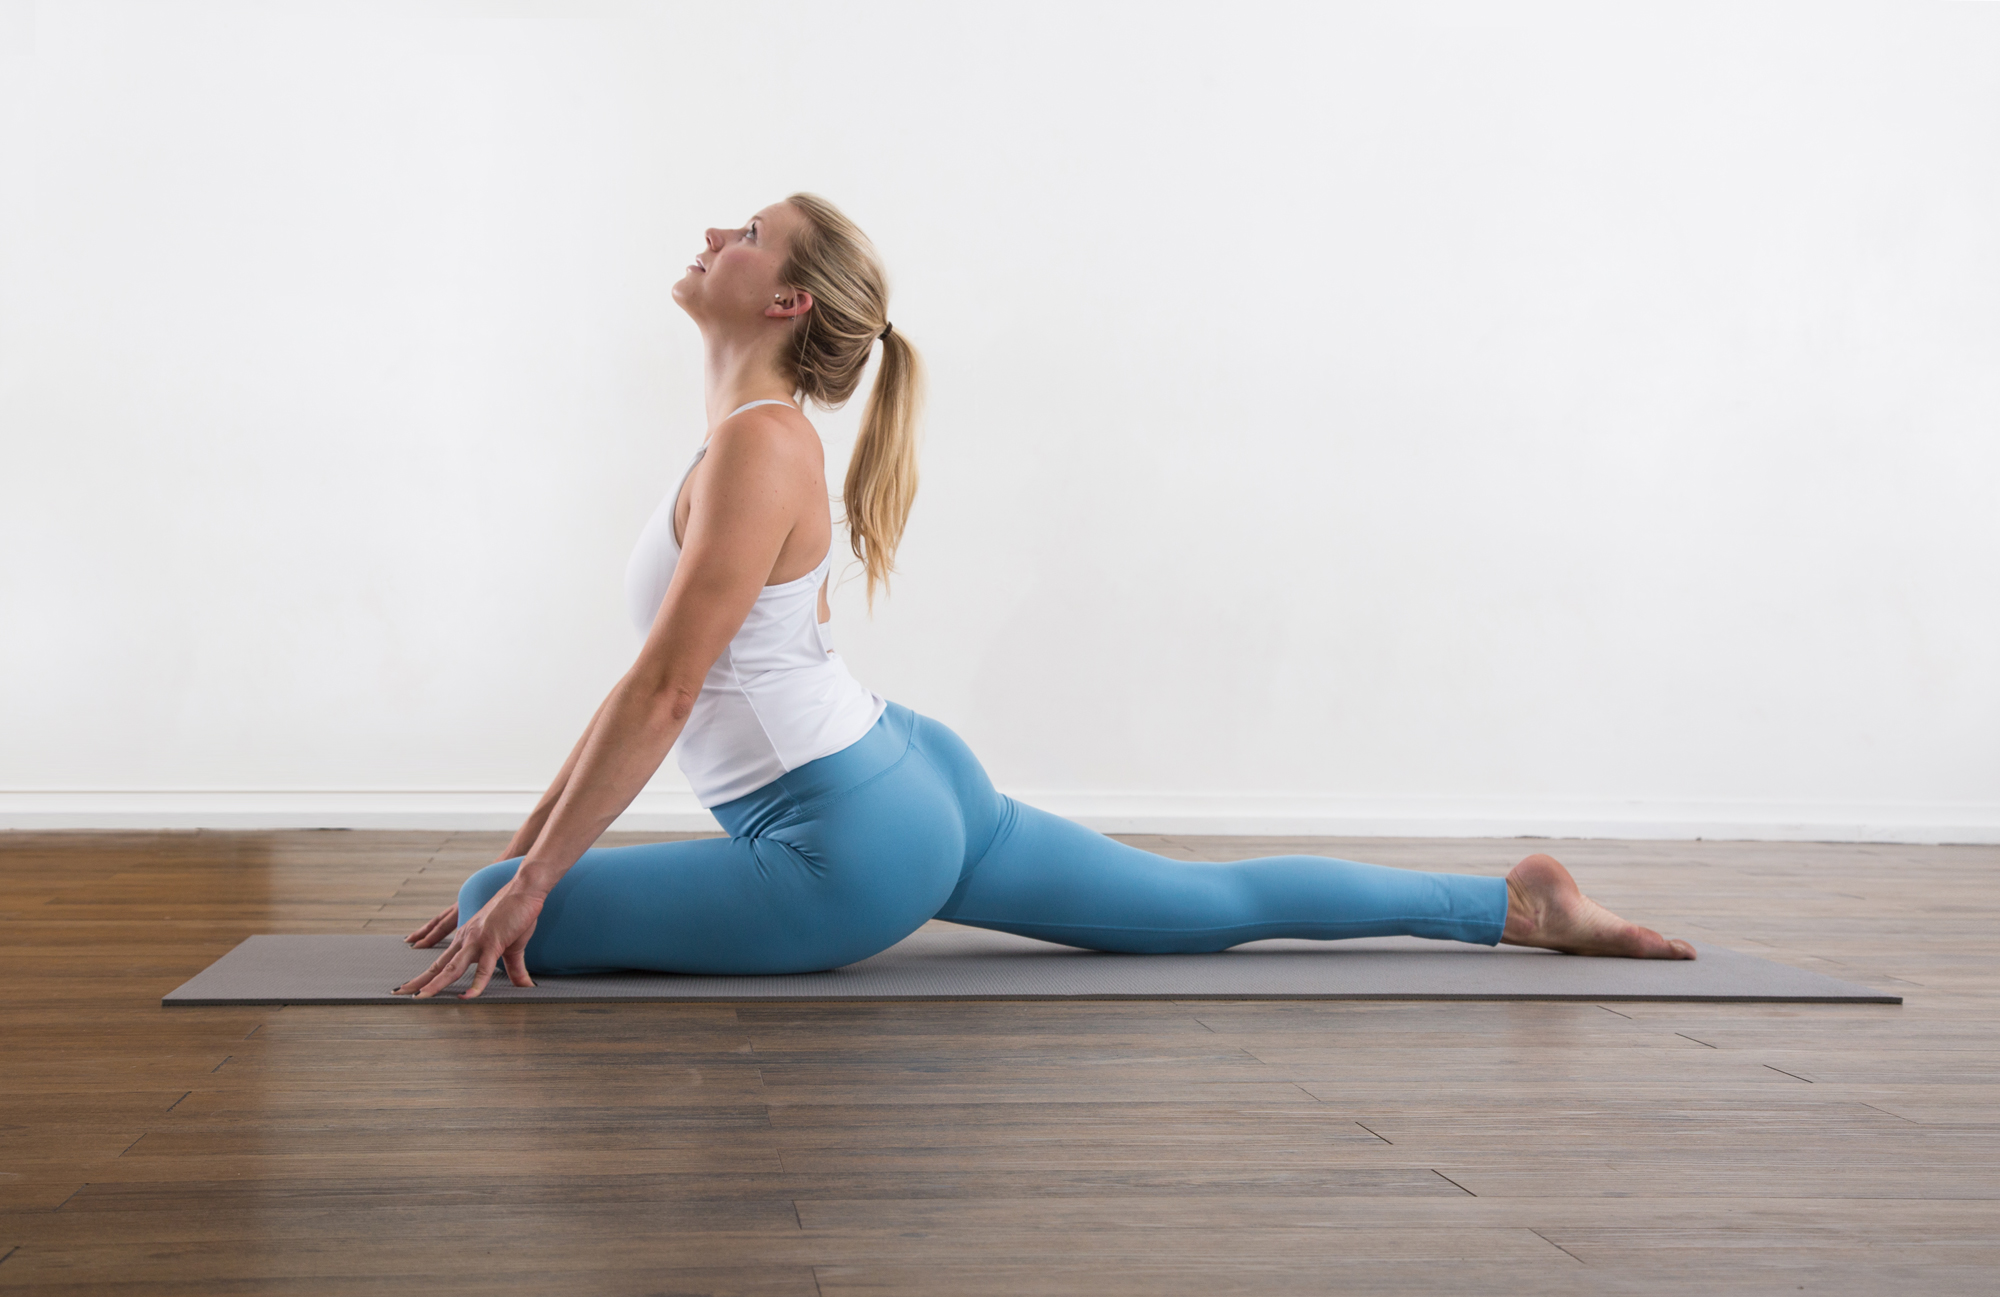 blond yogatoday Woman in a white shirt and blue pants doing yoga in a studio half pigeon pose is a deep hip stretching yoga posture